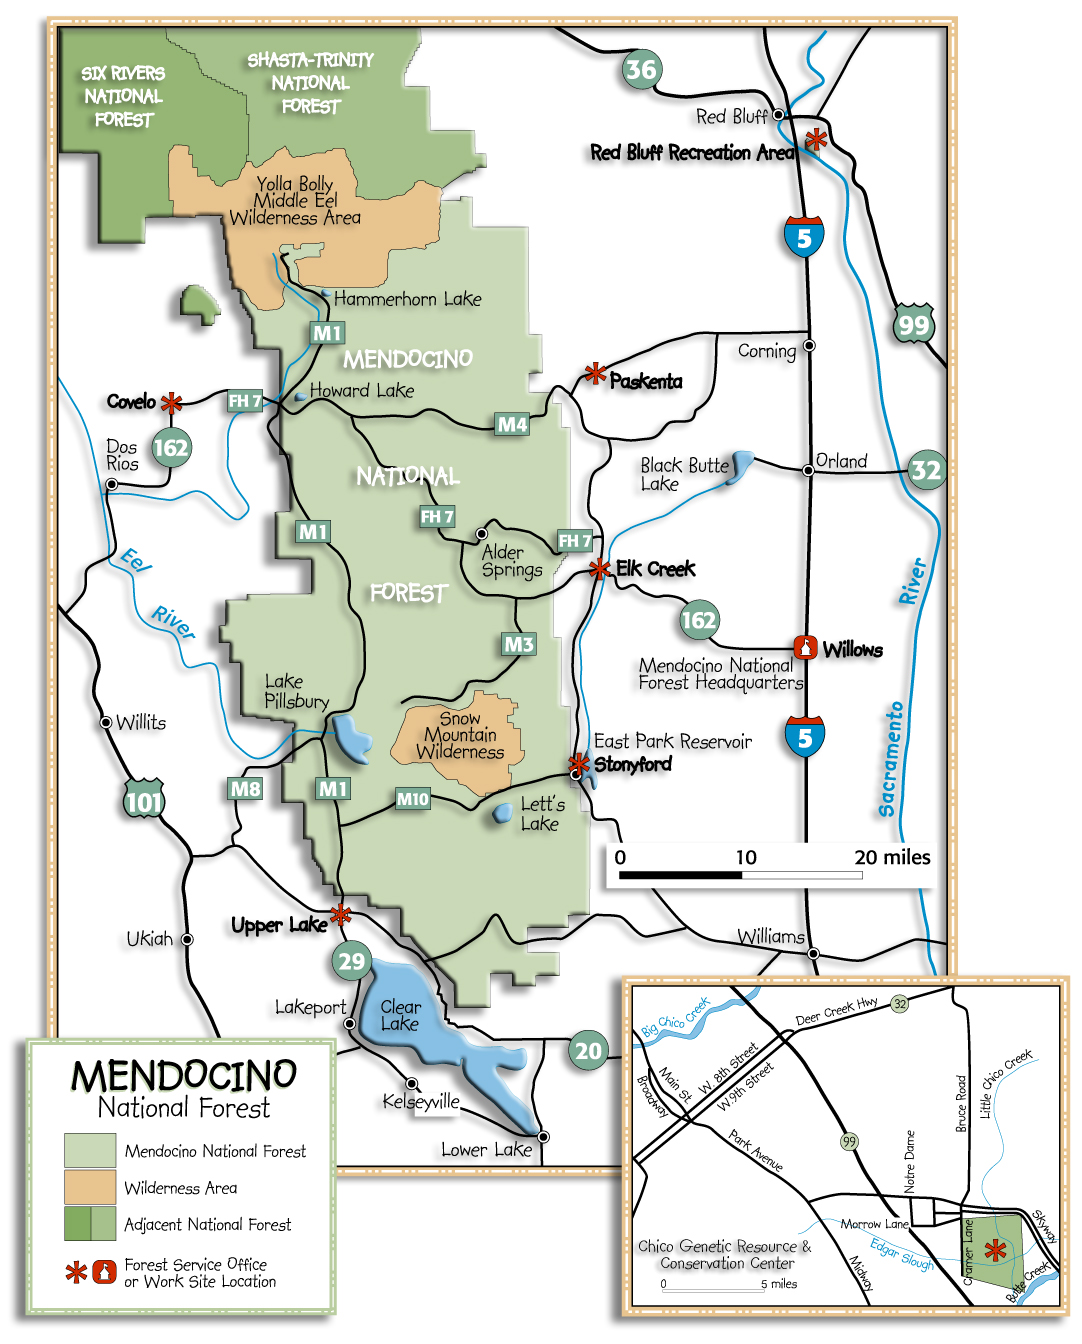 Mendocino National Forest Maps Publications - Us forest service topographic maps